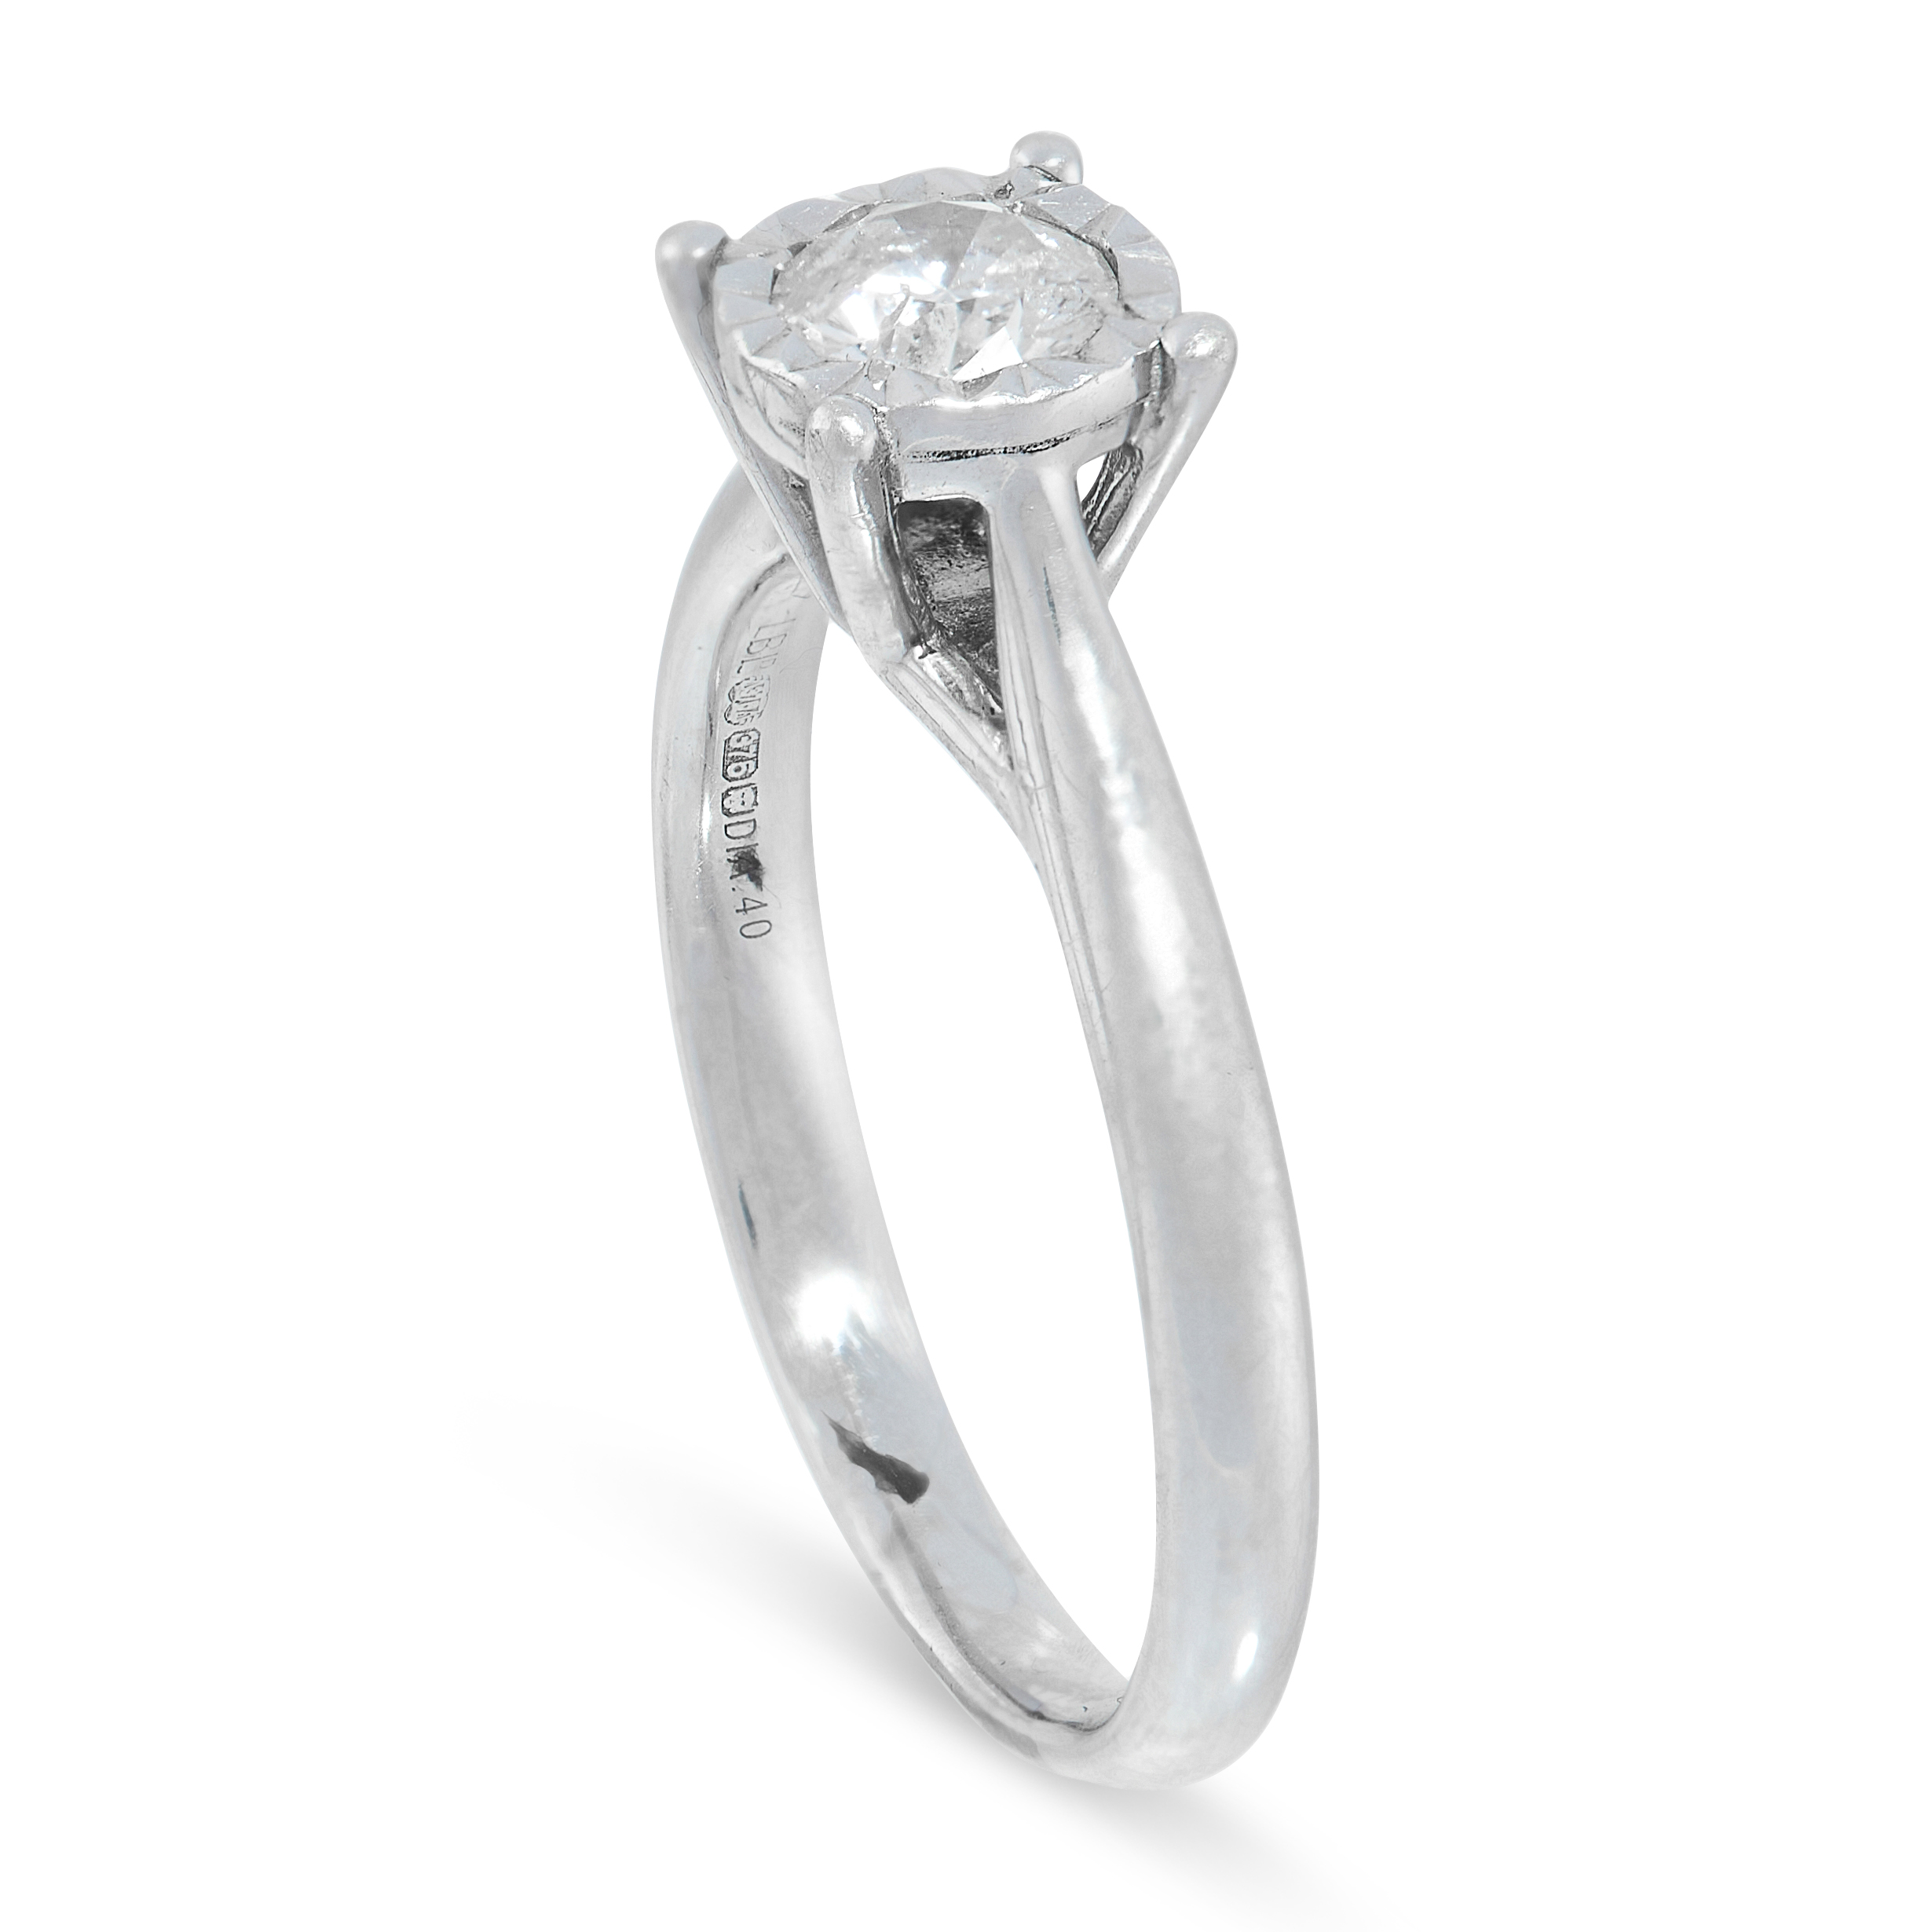 A DIAMOND SOLITAIRE in 9ct white gold, set with a round cut diamond of 0.40 carats, British - Image 2 of 2